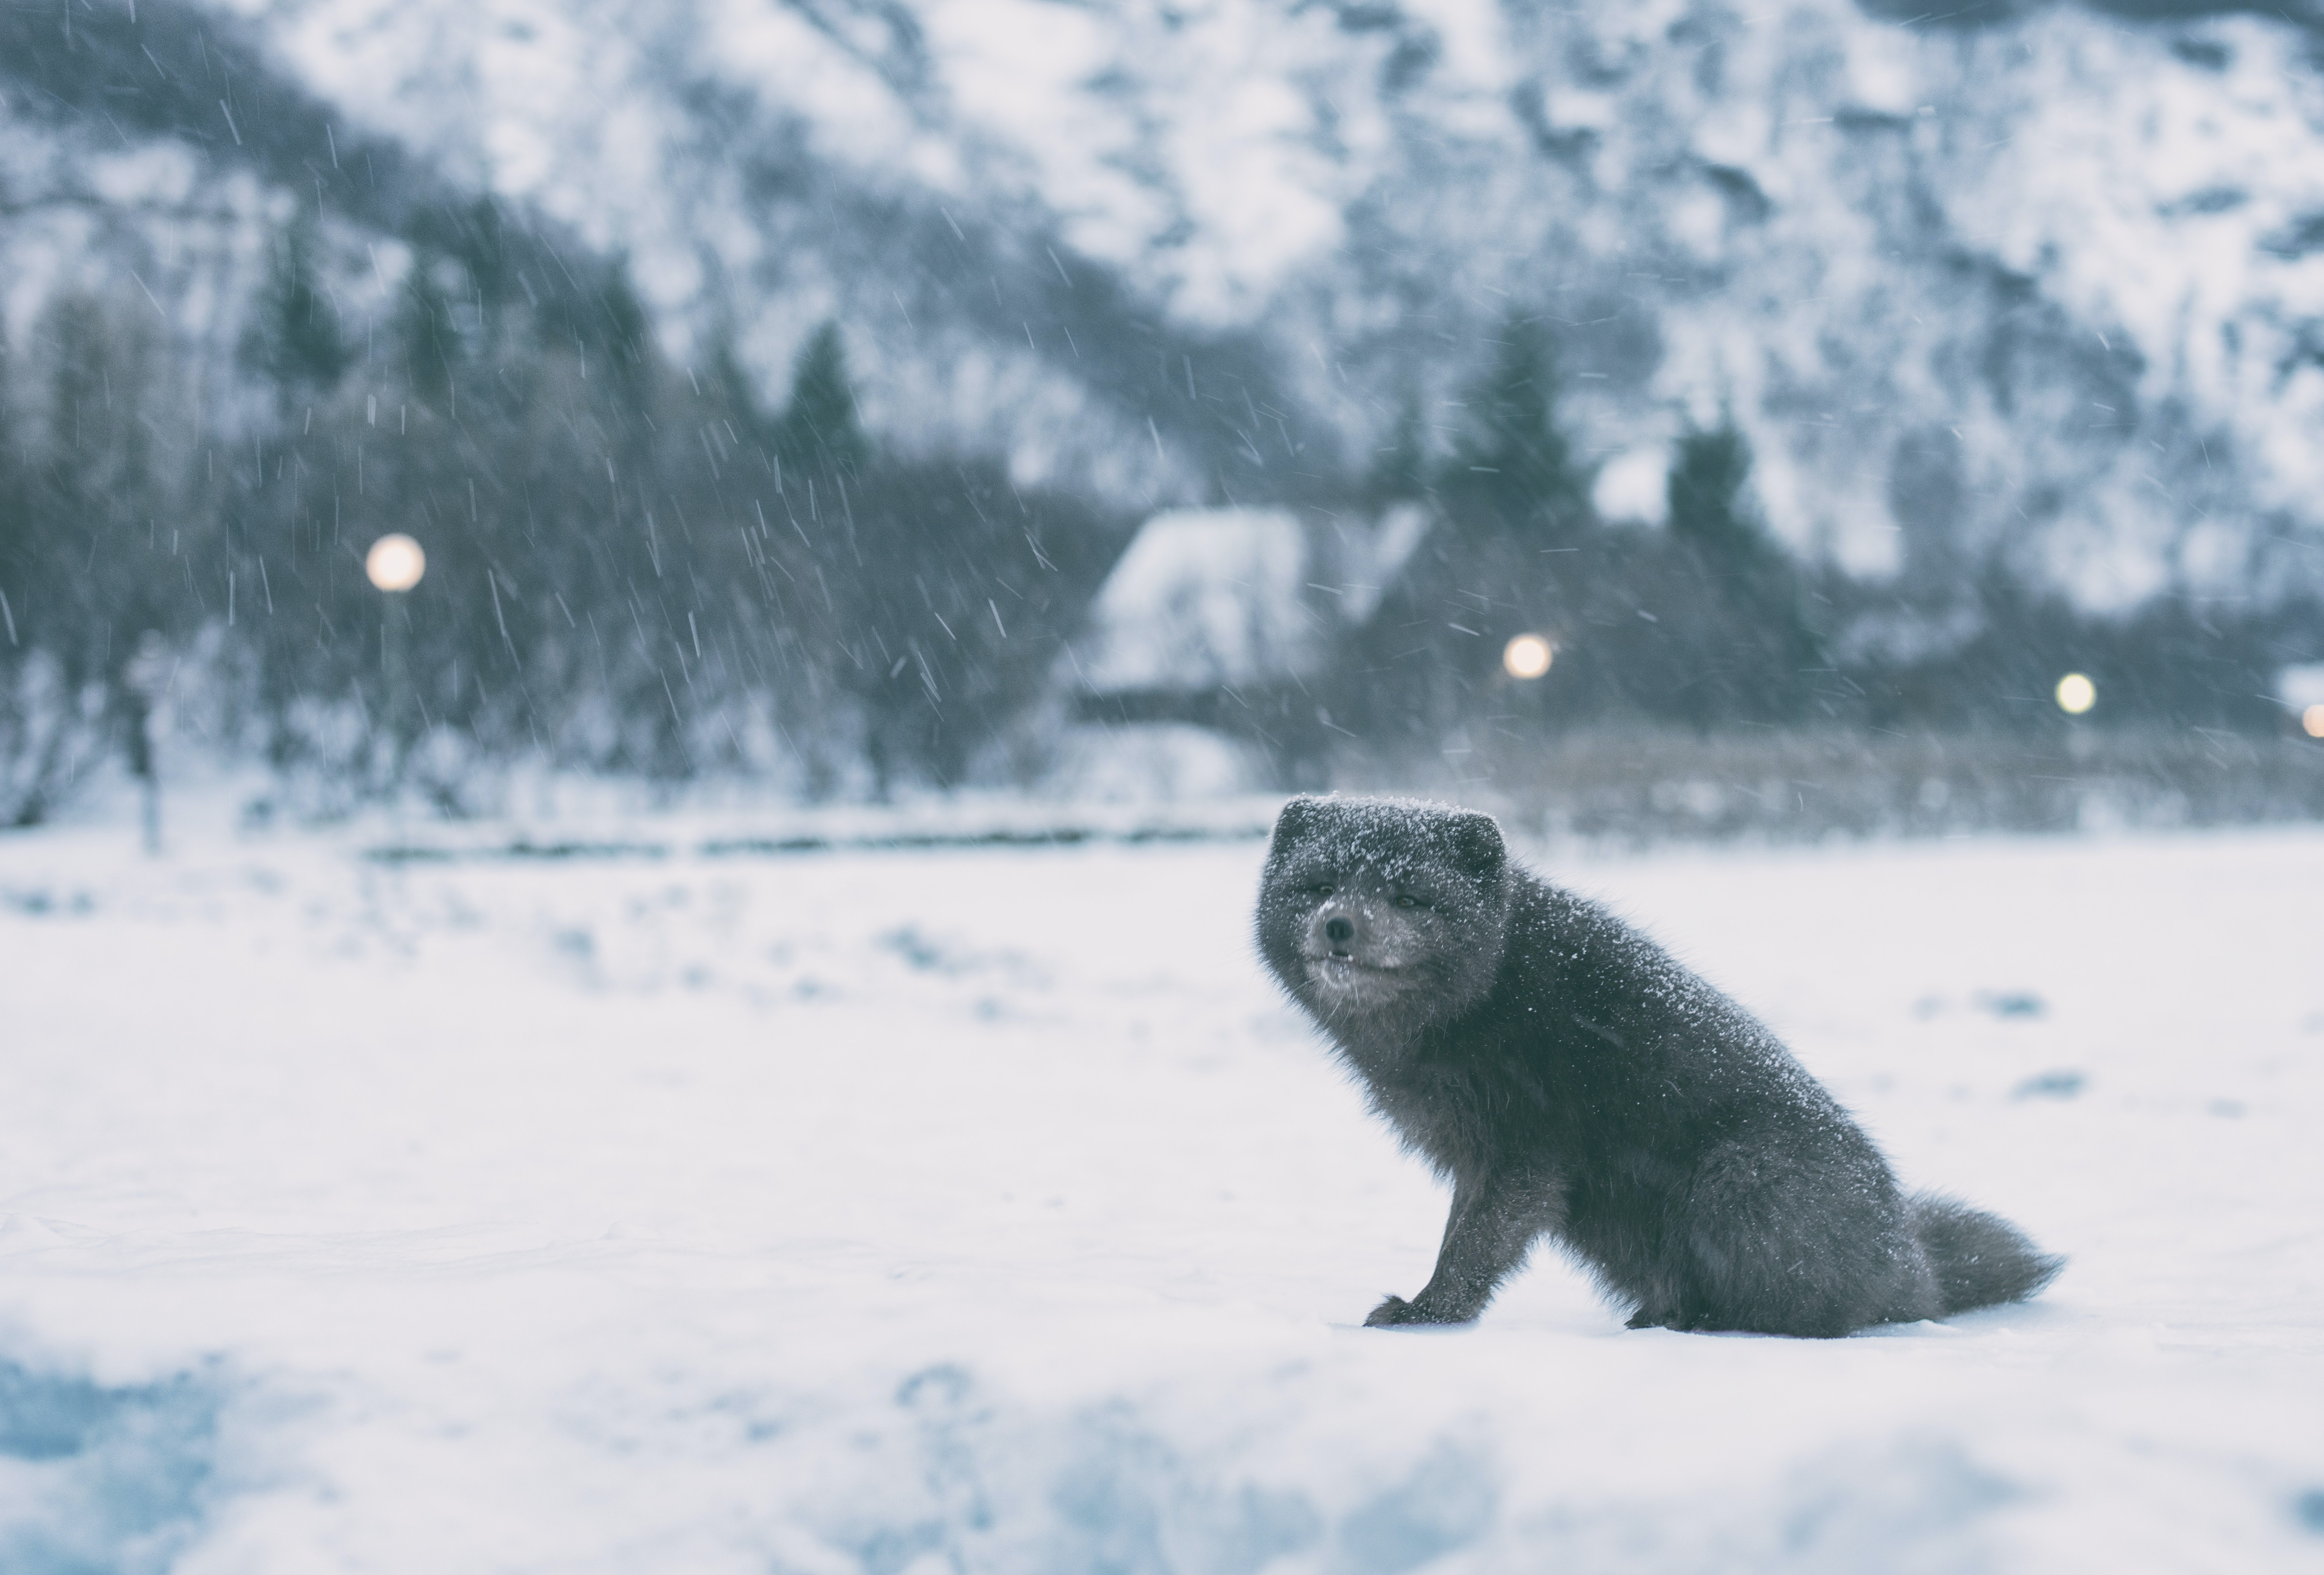 greyscale photography of raccoon on open field covered with snow during winter